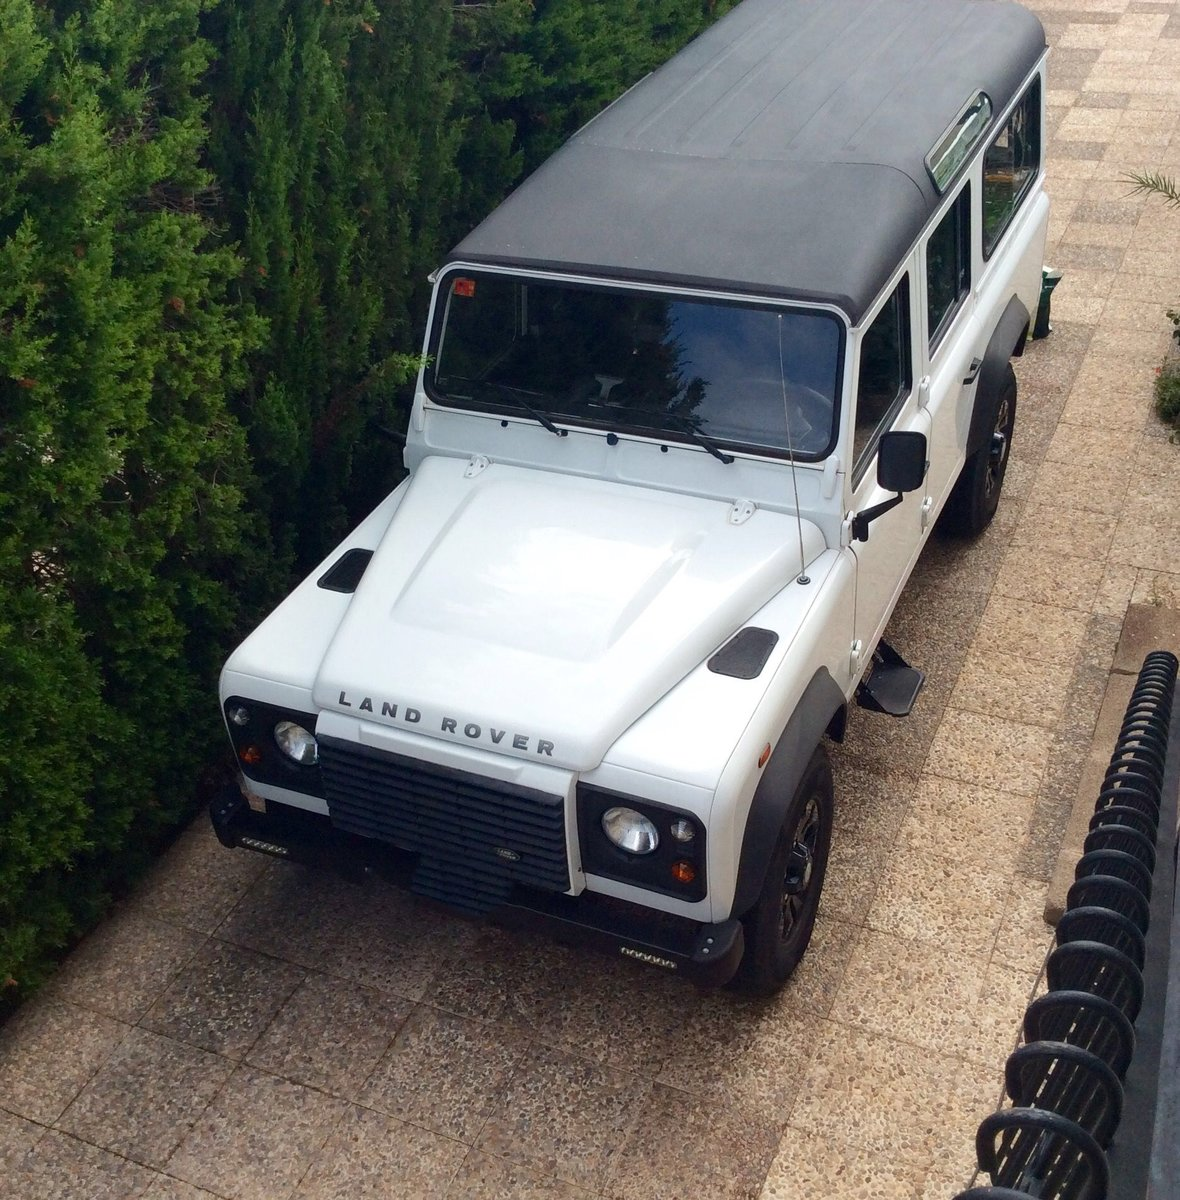 2011 Land Rover defender 110 LHD For Sale (picture 1 of 6)